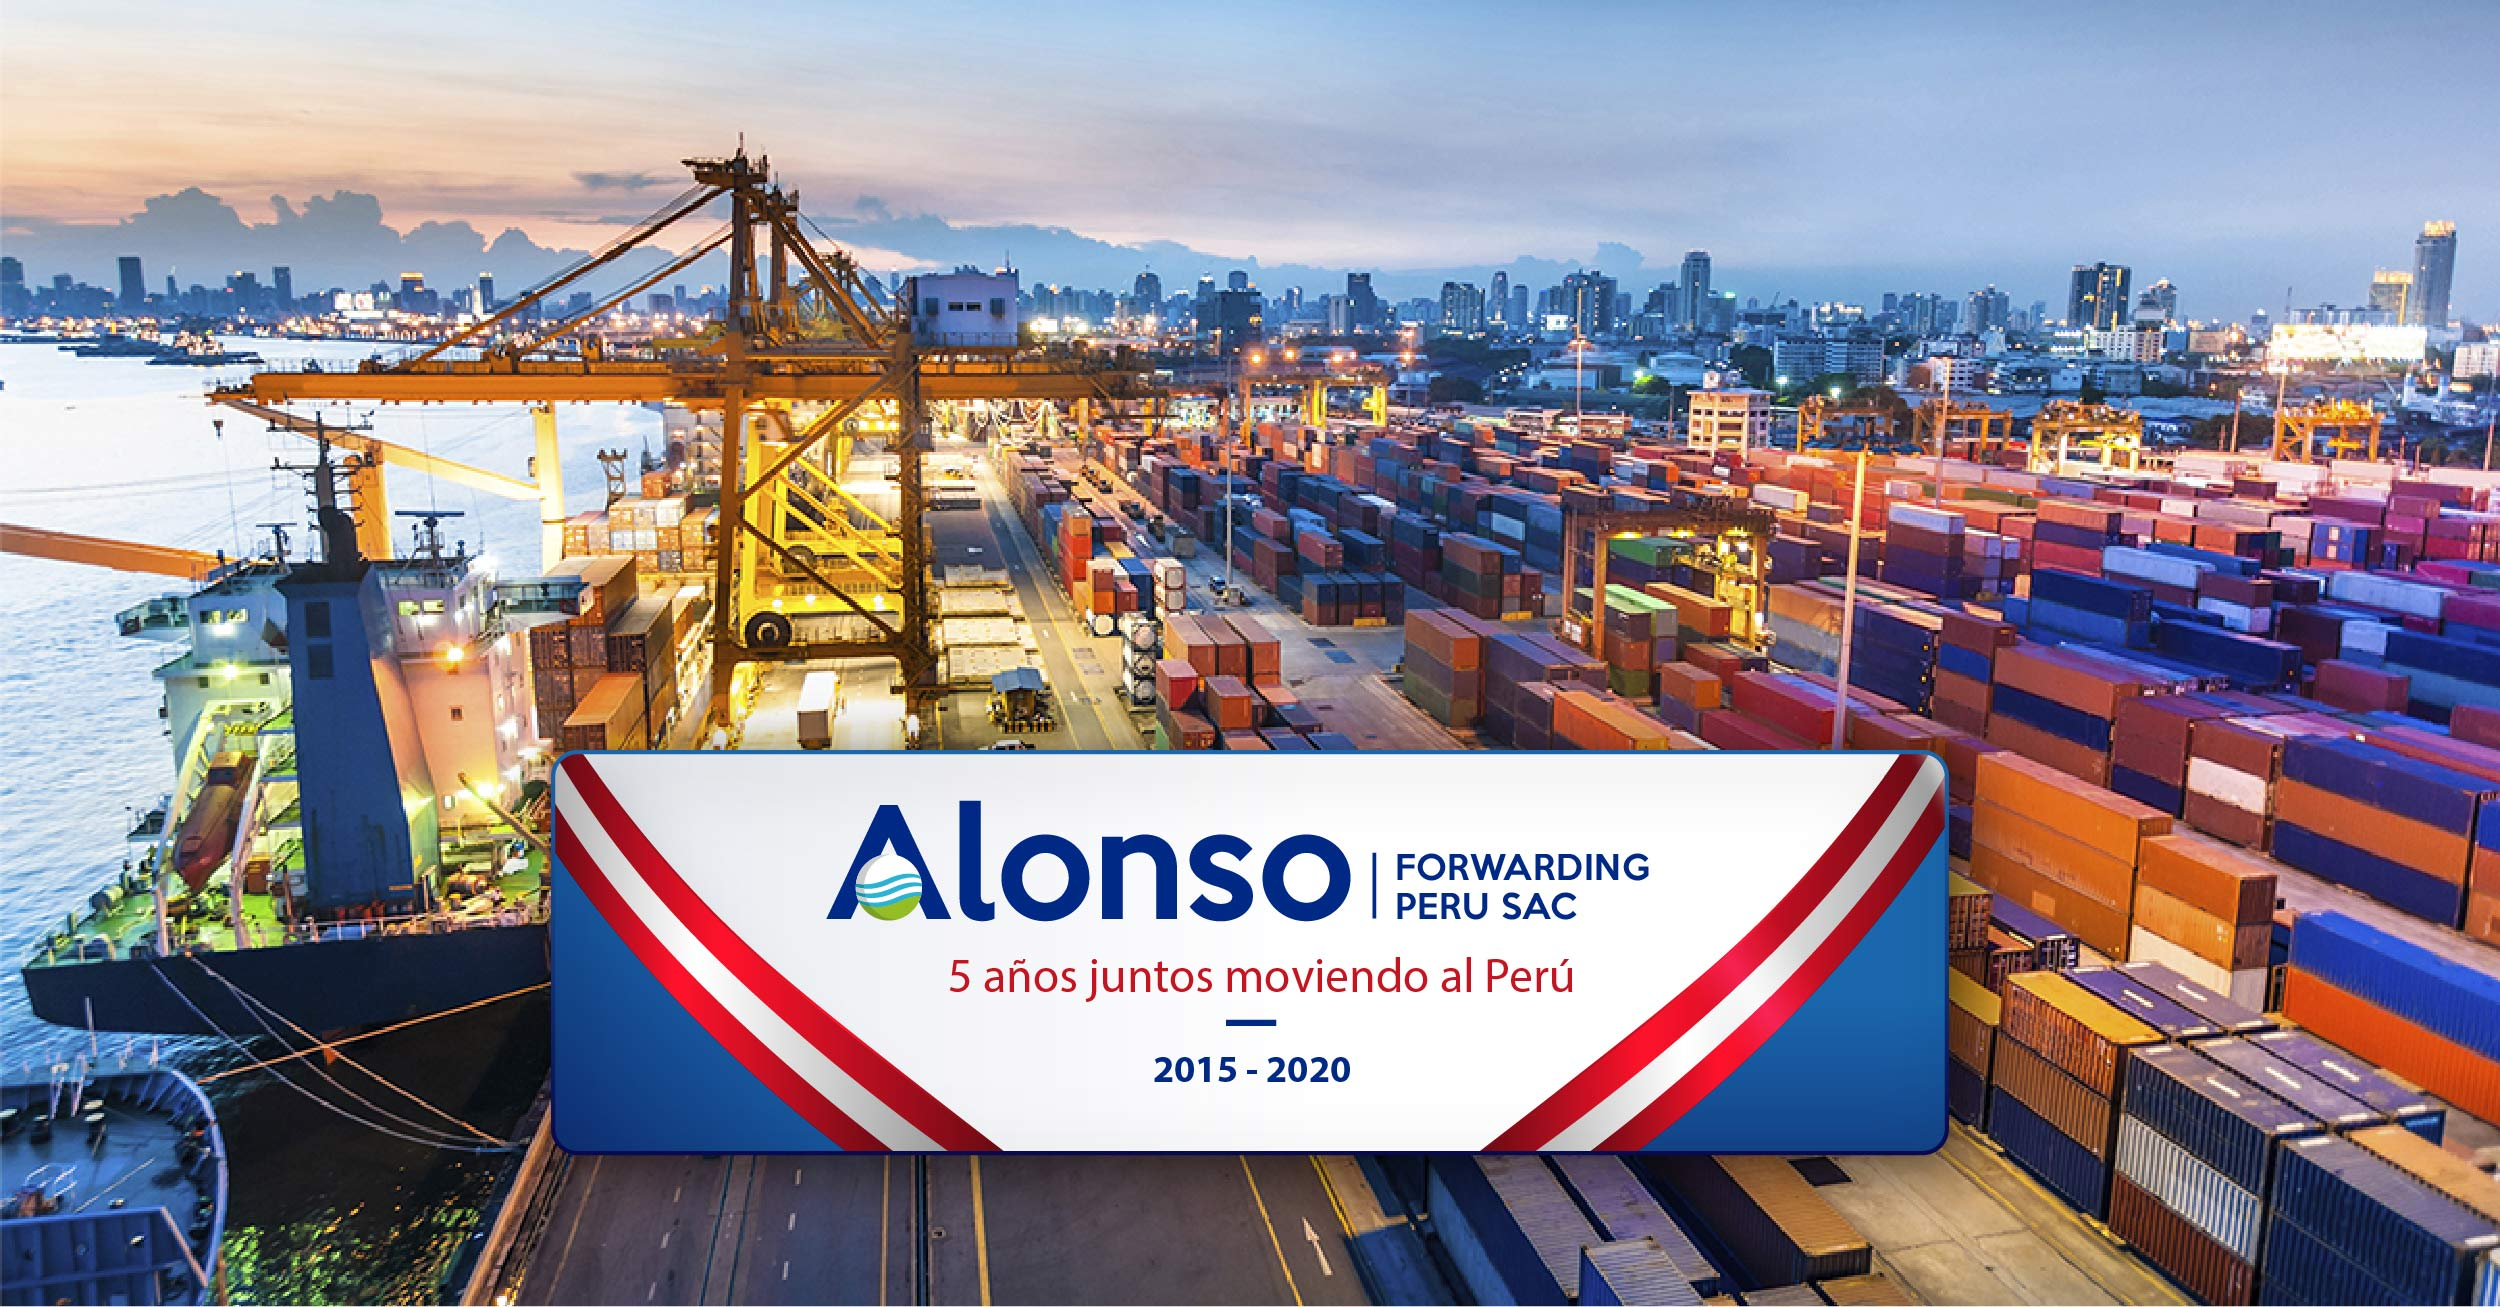 The Alonso Forwarding Perú's colleagues have celebrated their fifth anniversary.